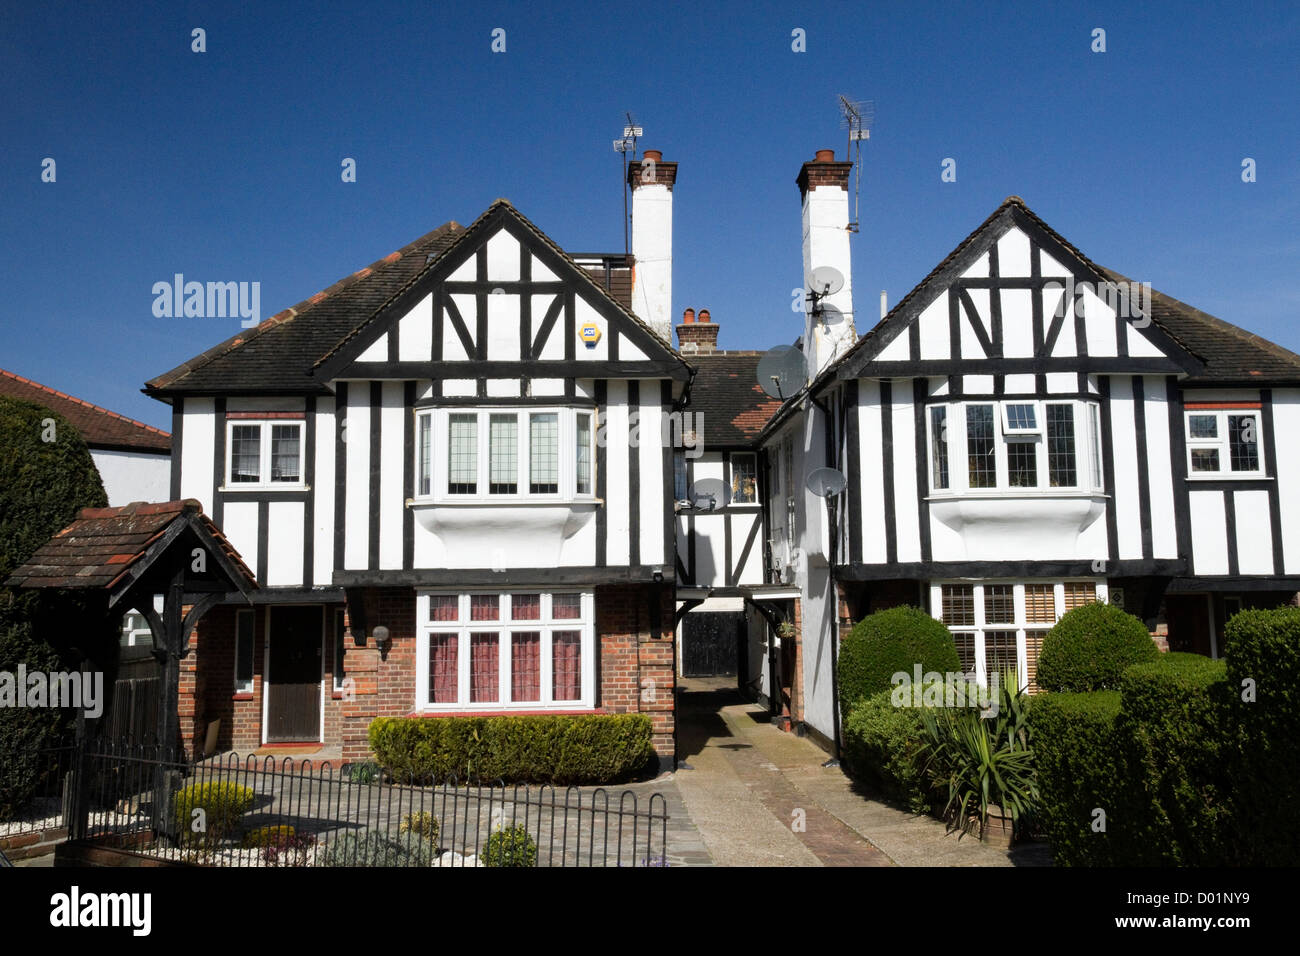 houses in mock tudor style in the suburb of finchley london stock photo houses in mock tudor style in the suburb of finchley london england